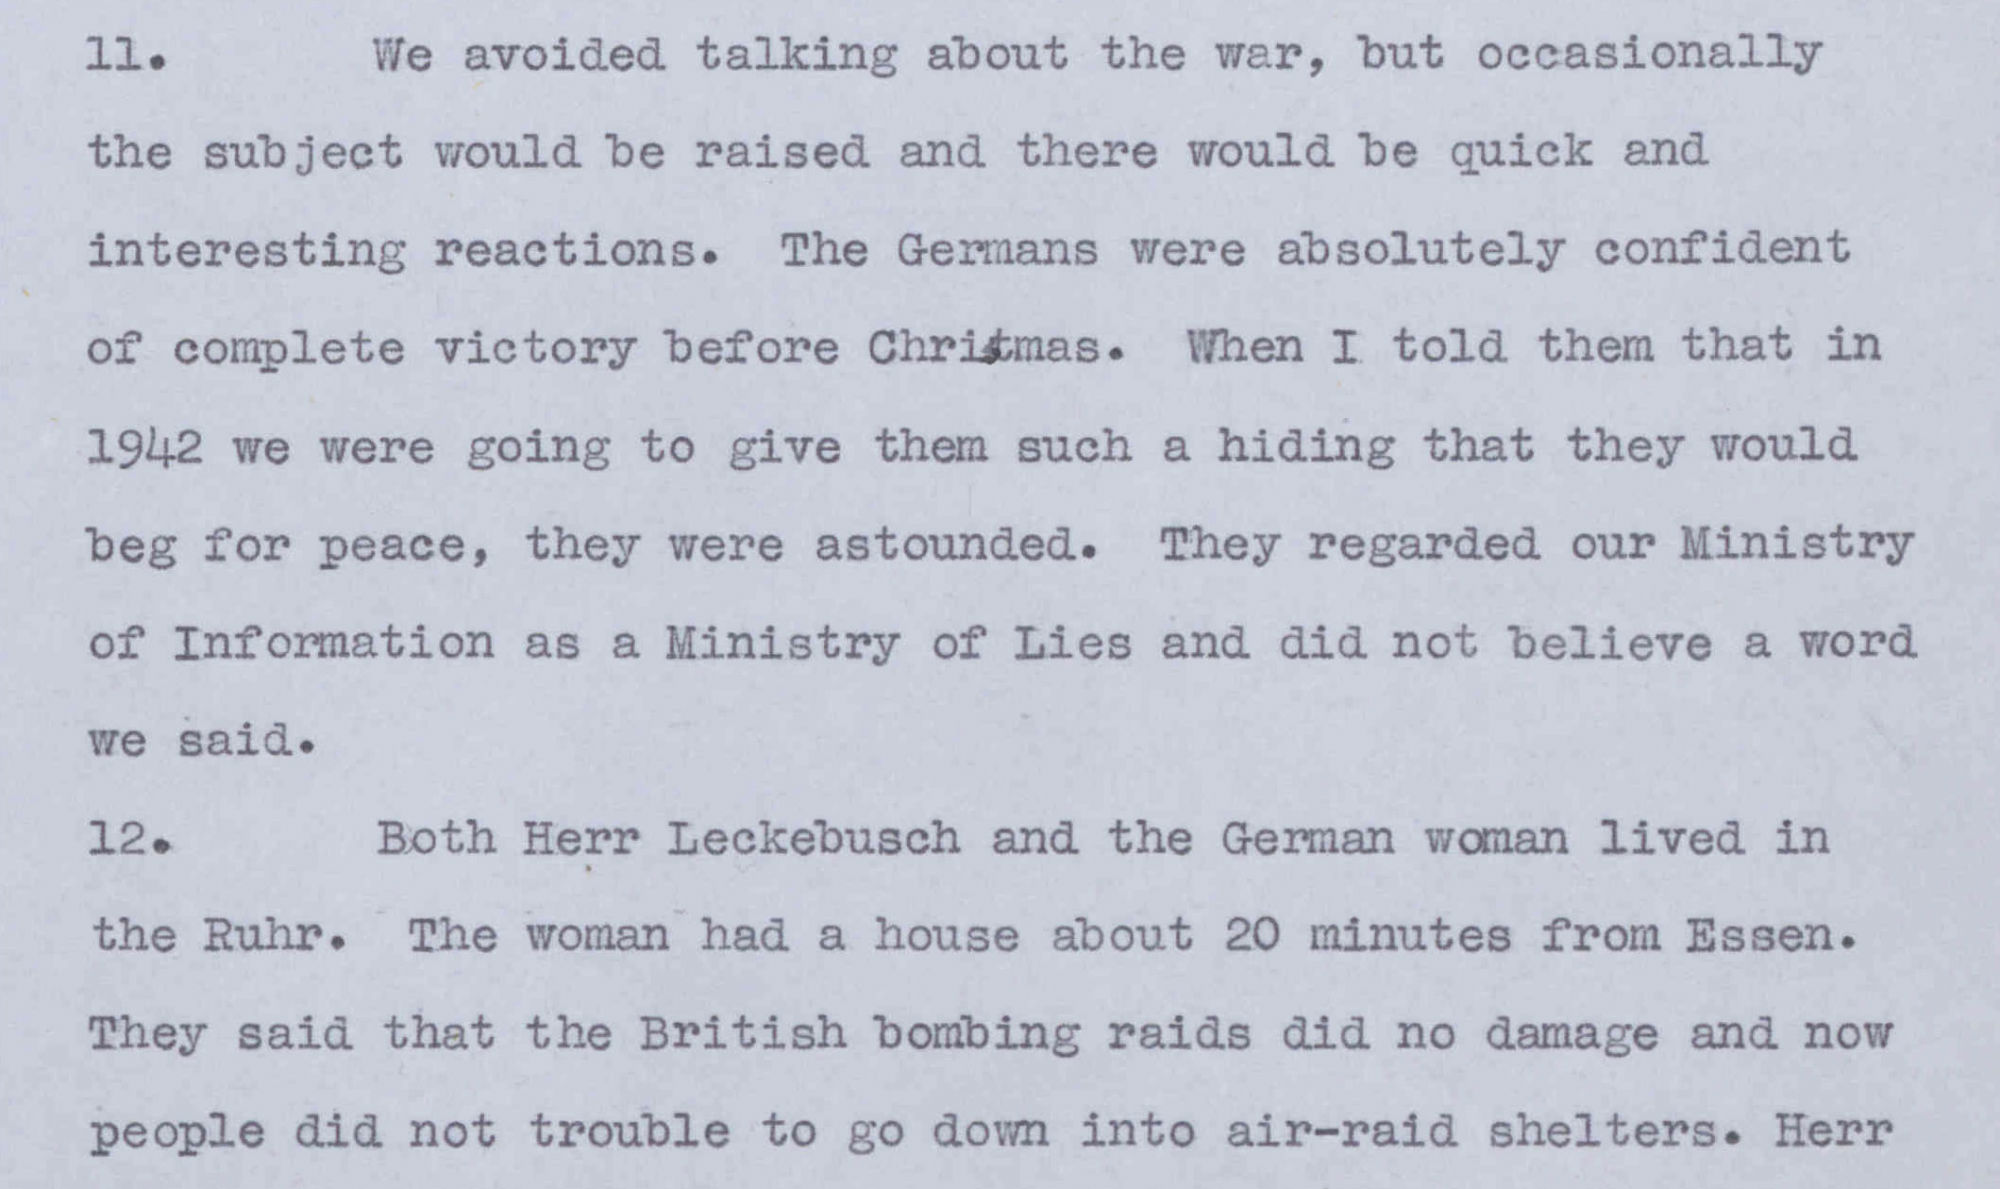 The Germans' impression of the war. Gallienne's conversation with a Jewish emigrant. © Crown Copyright documents are reproduced by permission of The National Archives London, UK